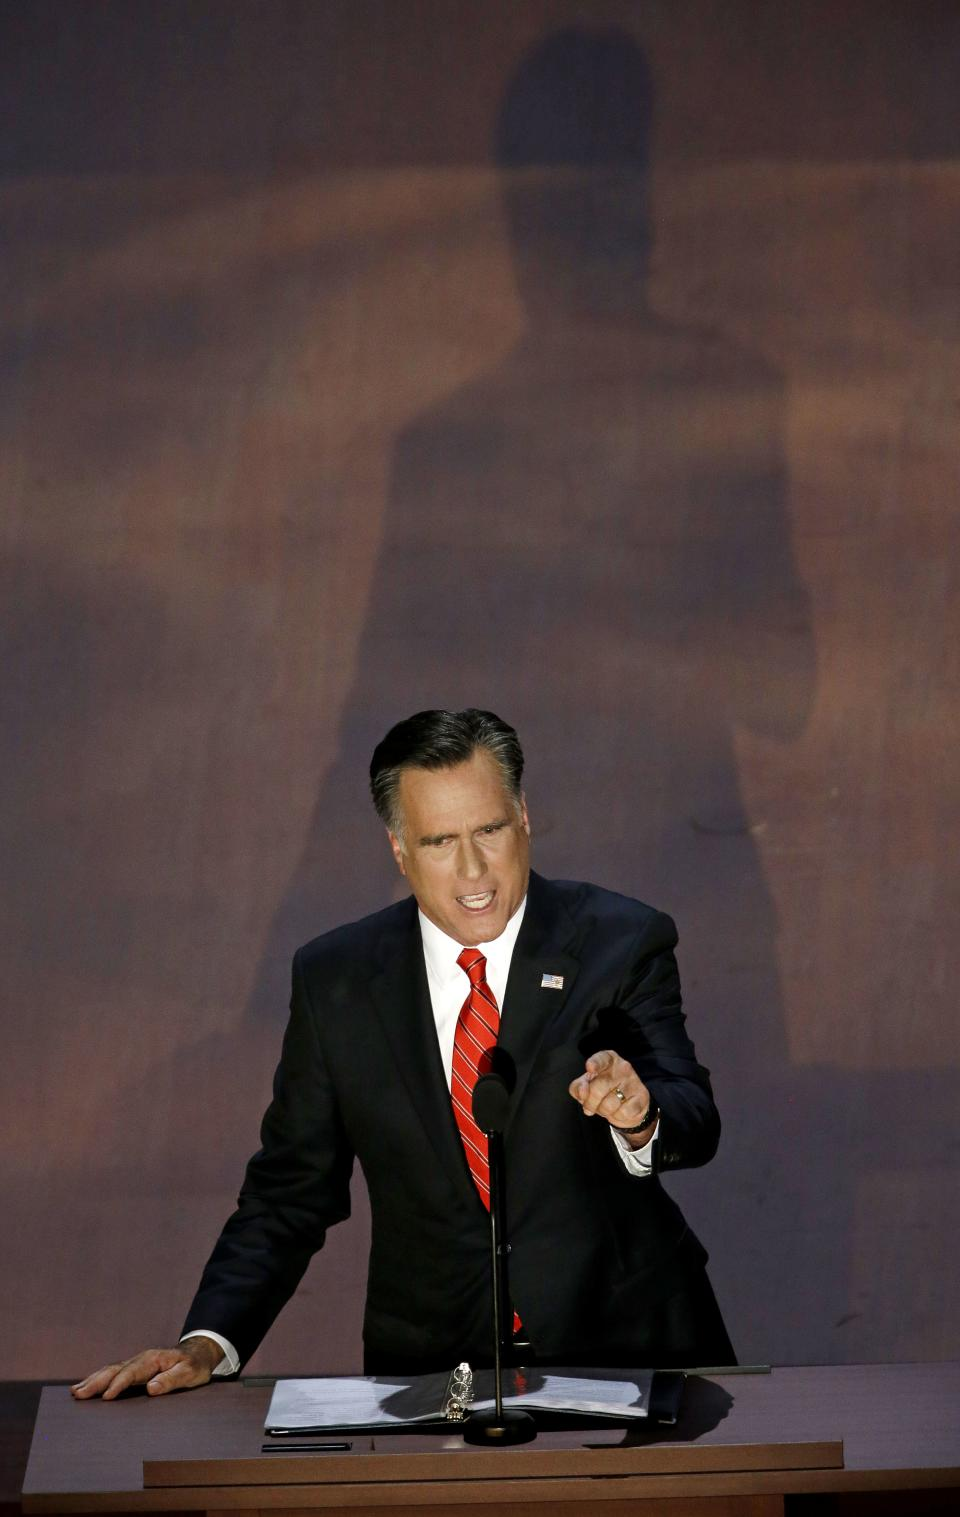 Republican presidential nominee Mitt Romney addresses the Republican National Convention in Tampa, Fla., on Friday, Aug. 31, 2012. (AP Photo/Patrick Semansky)